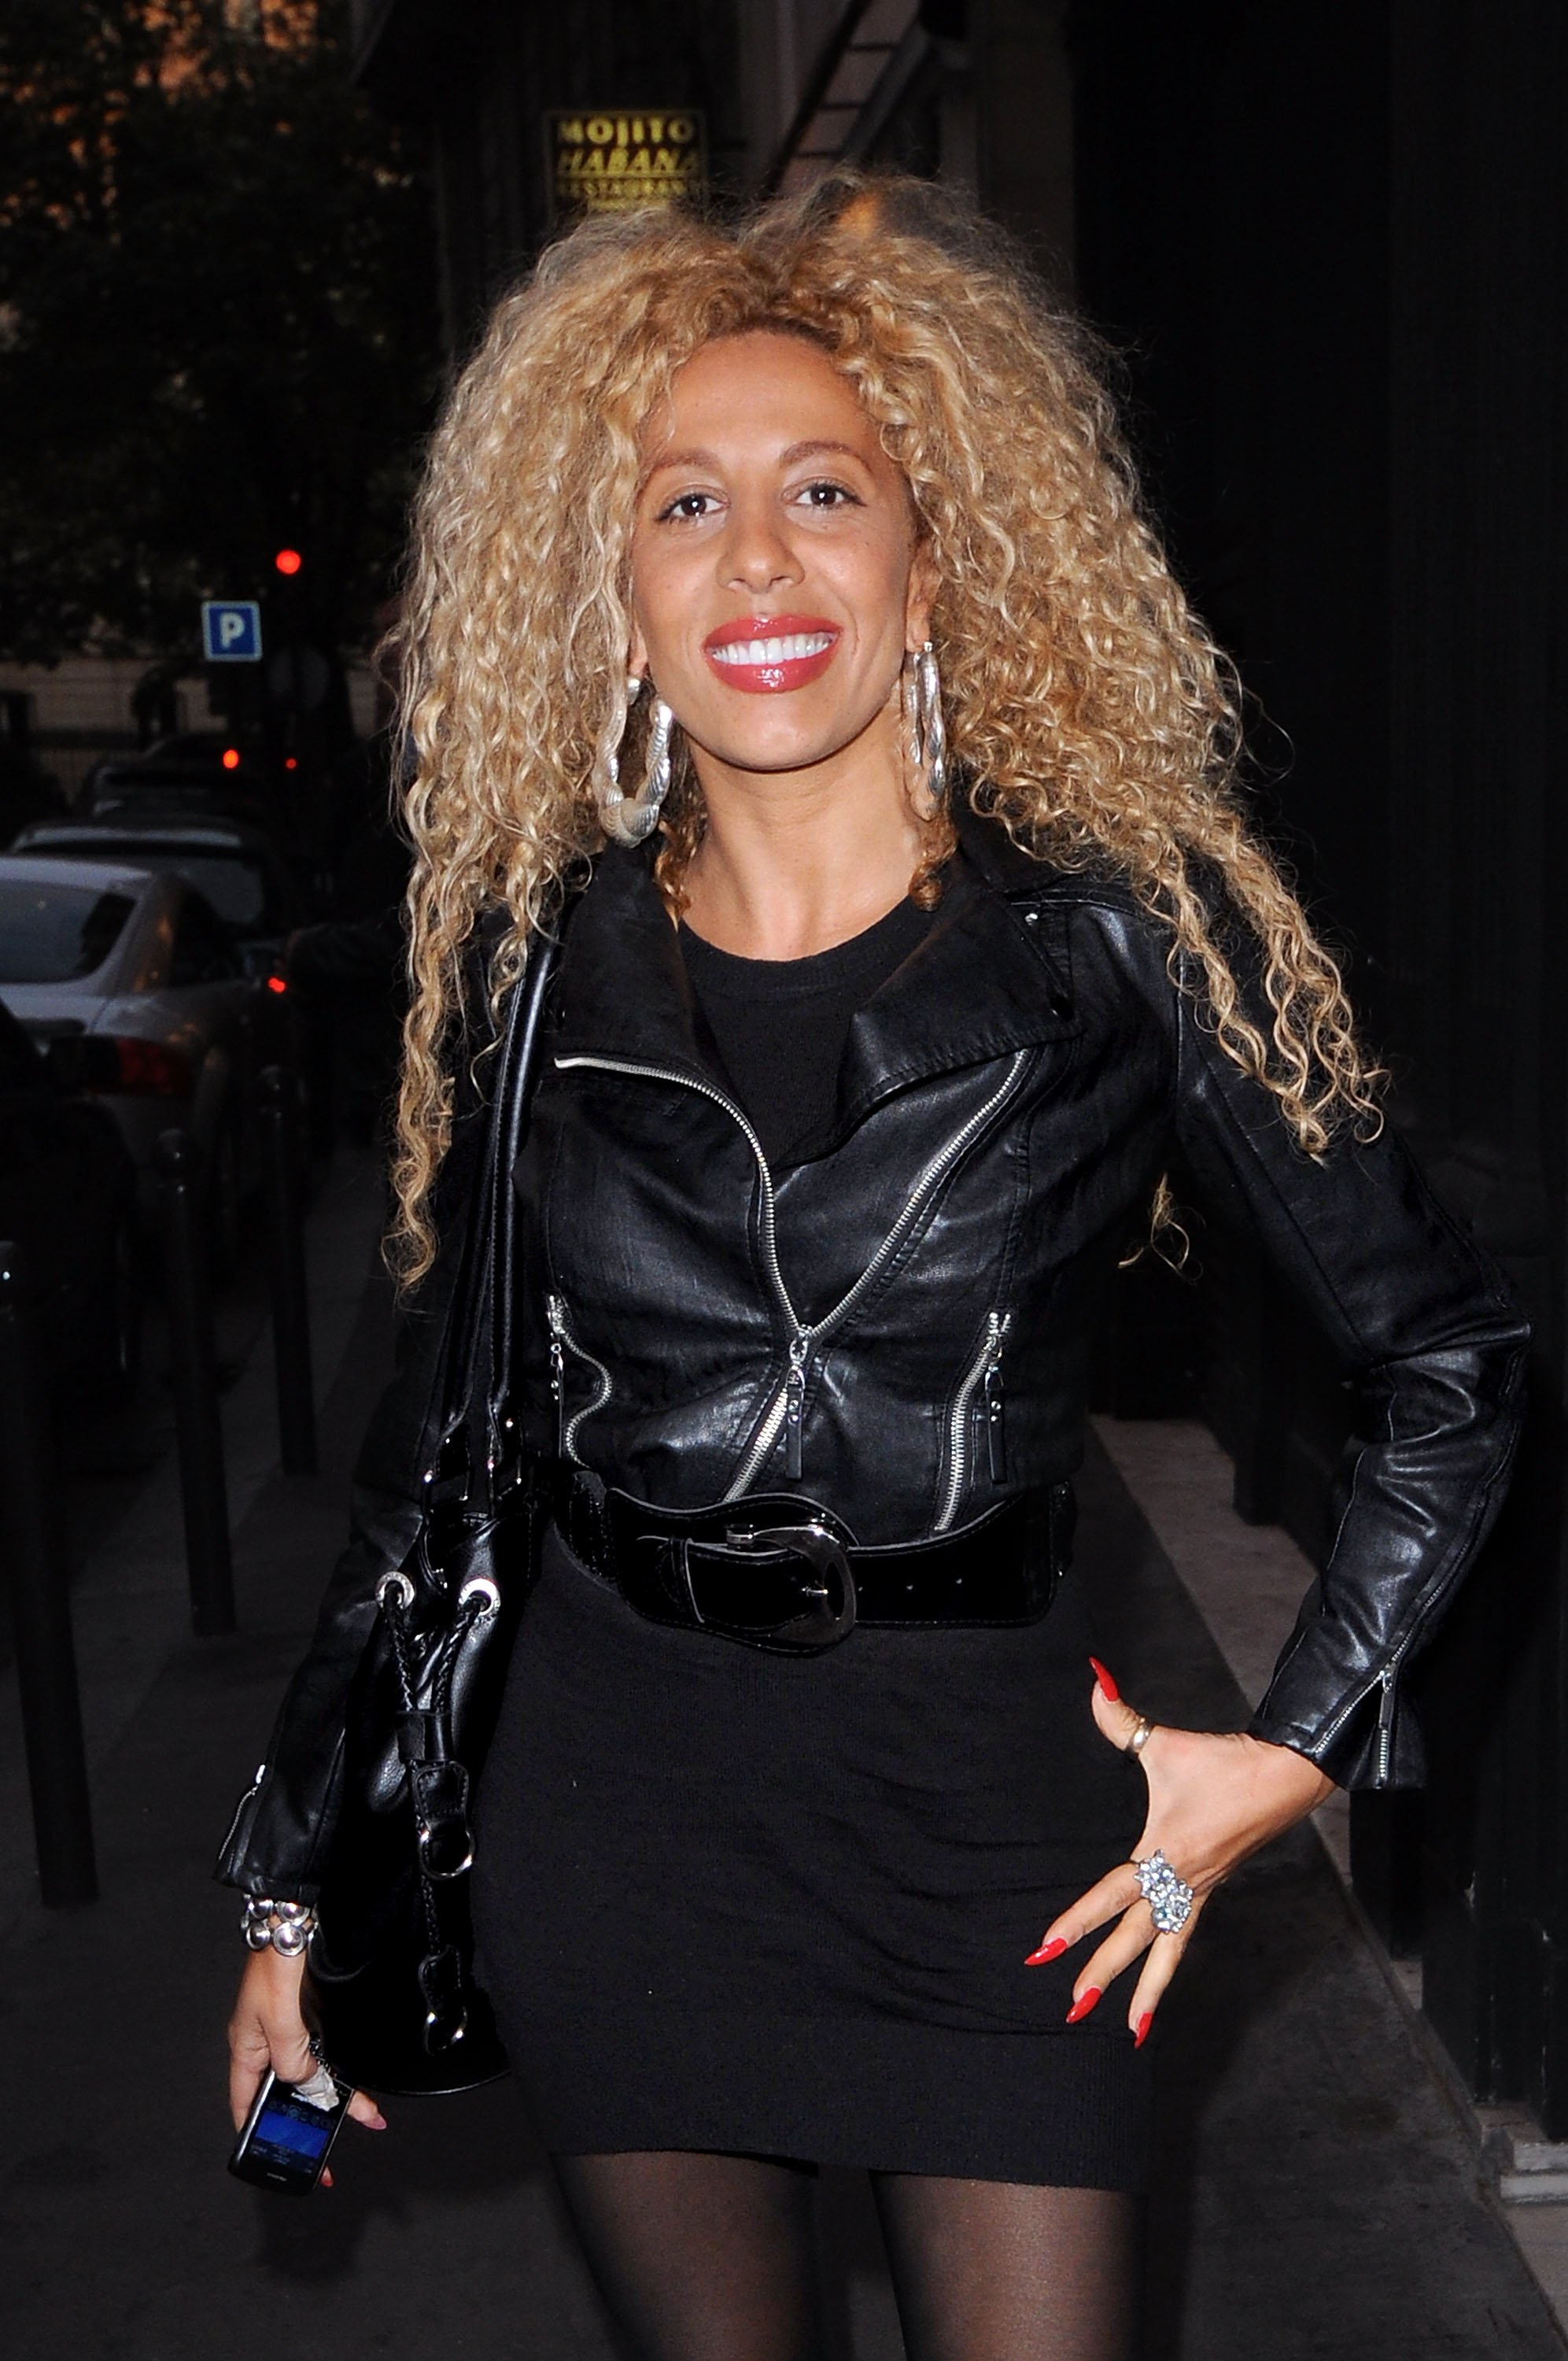 Afida Turner in Paris on June 15, 2010 in Paris, France | Photo: Getty Images